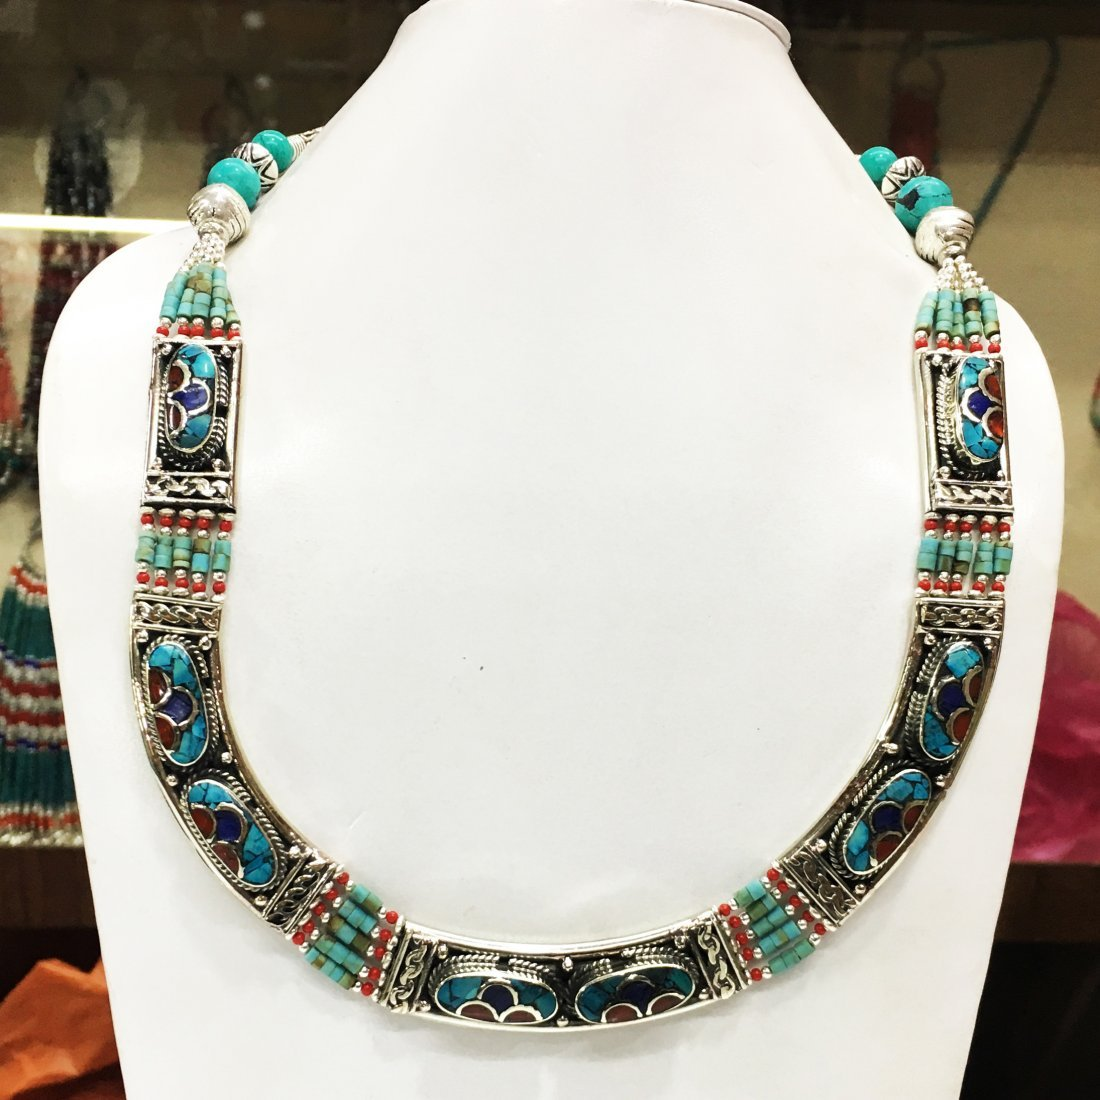 New Arrival Nepali Turquoise & Coral Tibetan Necklace